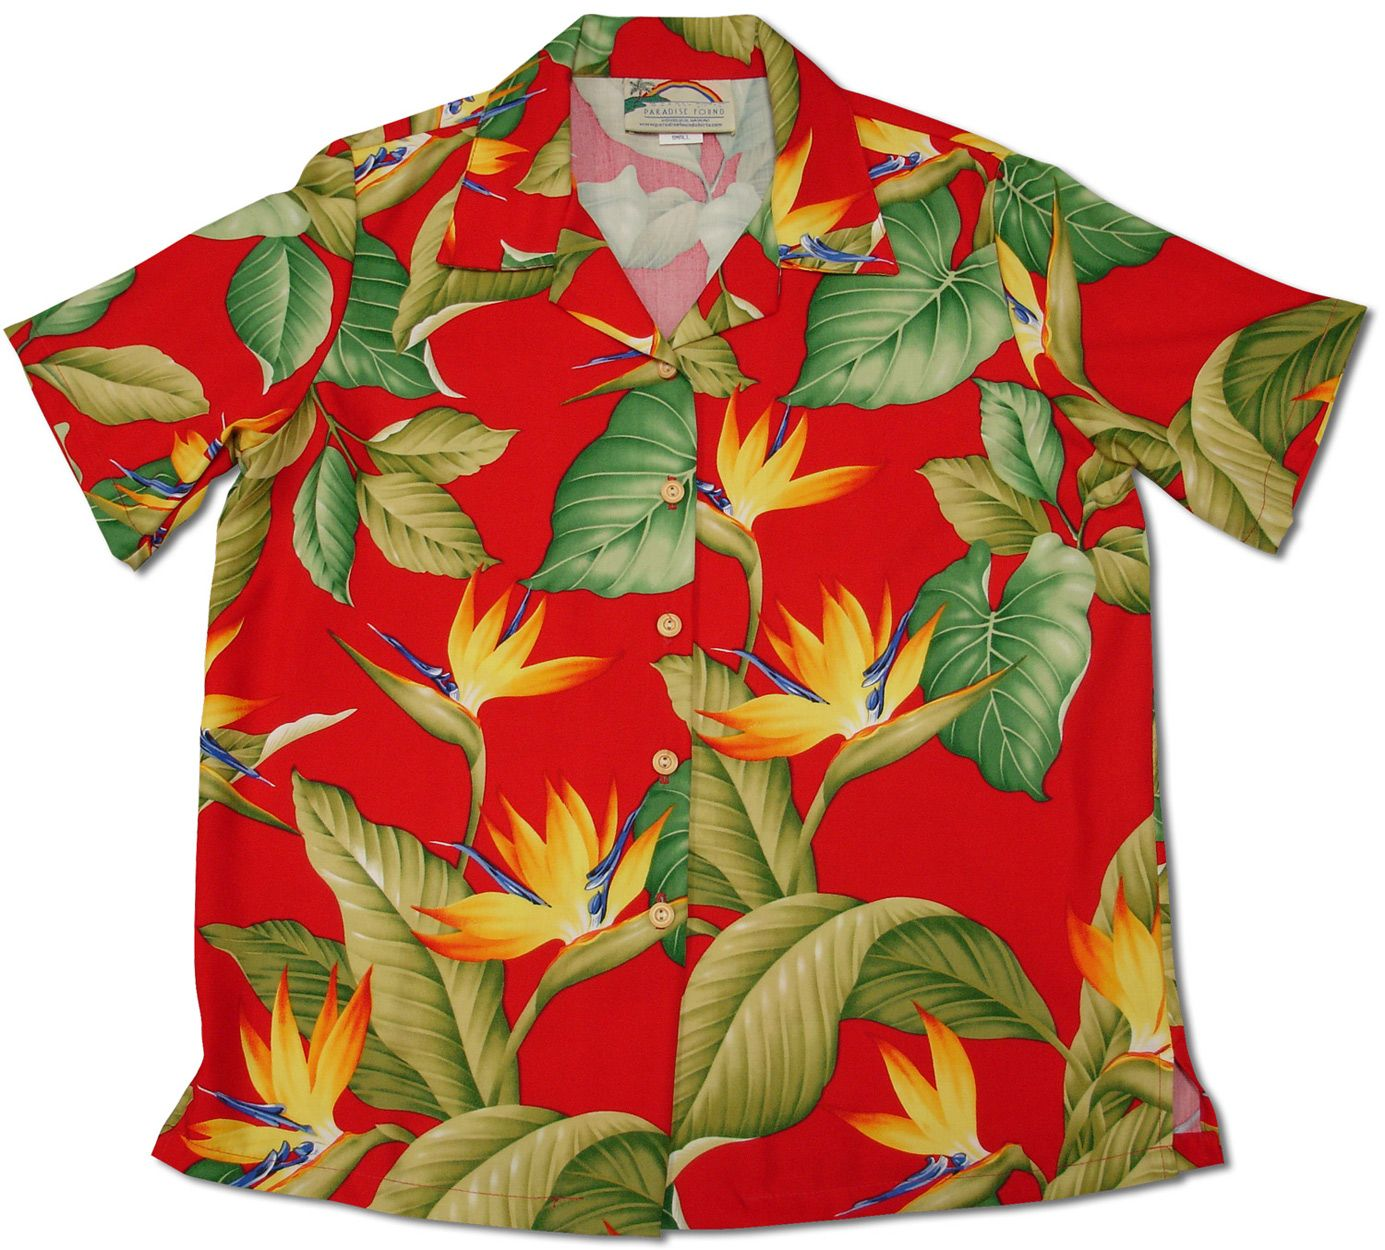 2484c4d0 Paradise Found creators of fine Hawaiian style clothing with many Men's and  Women's matching outfit prints. Hand made for over 50 years. 100% Rayon .